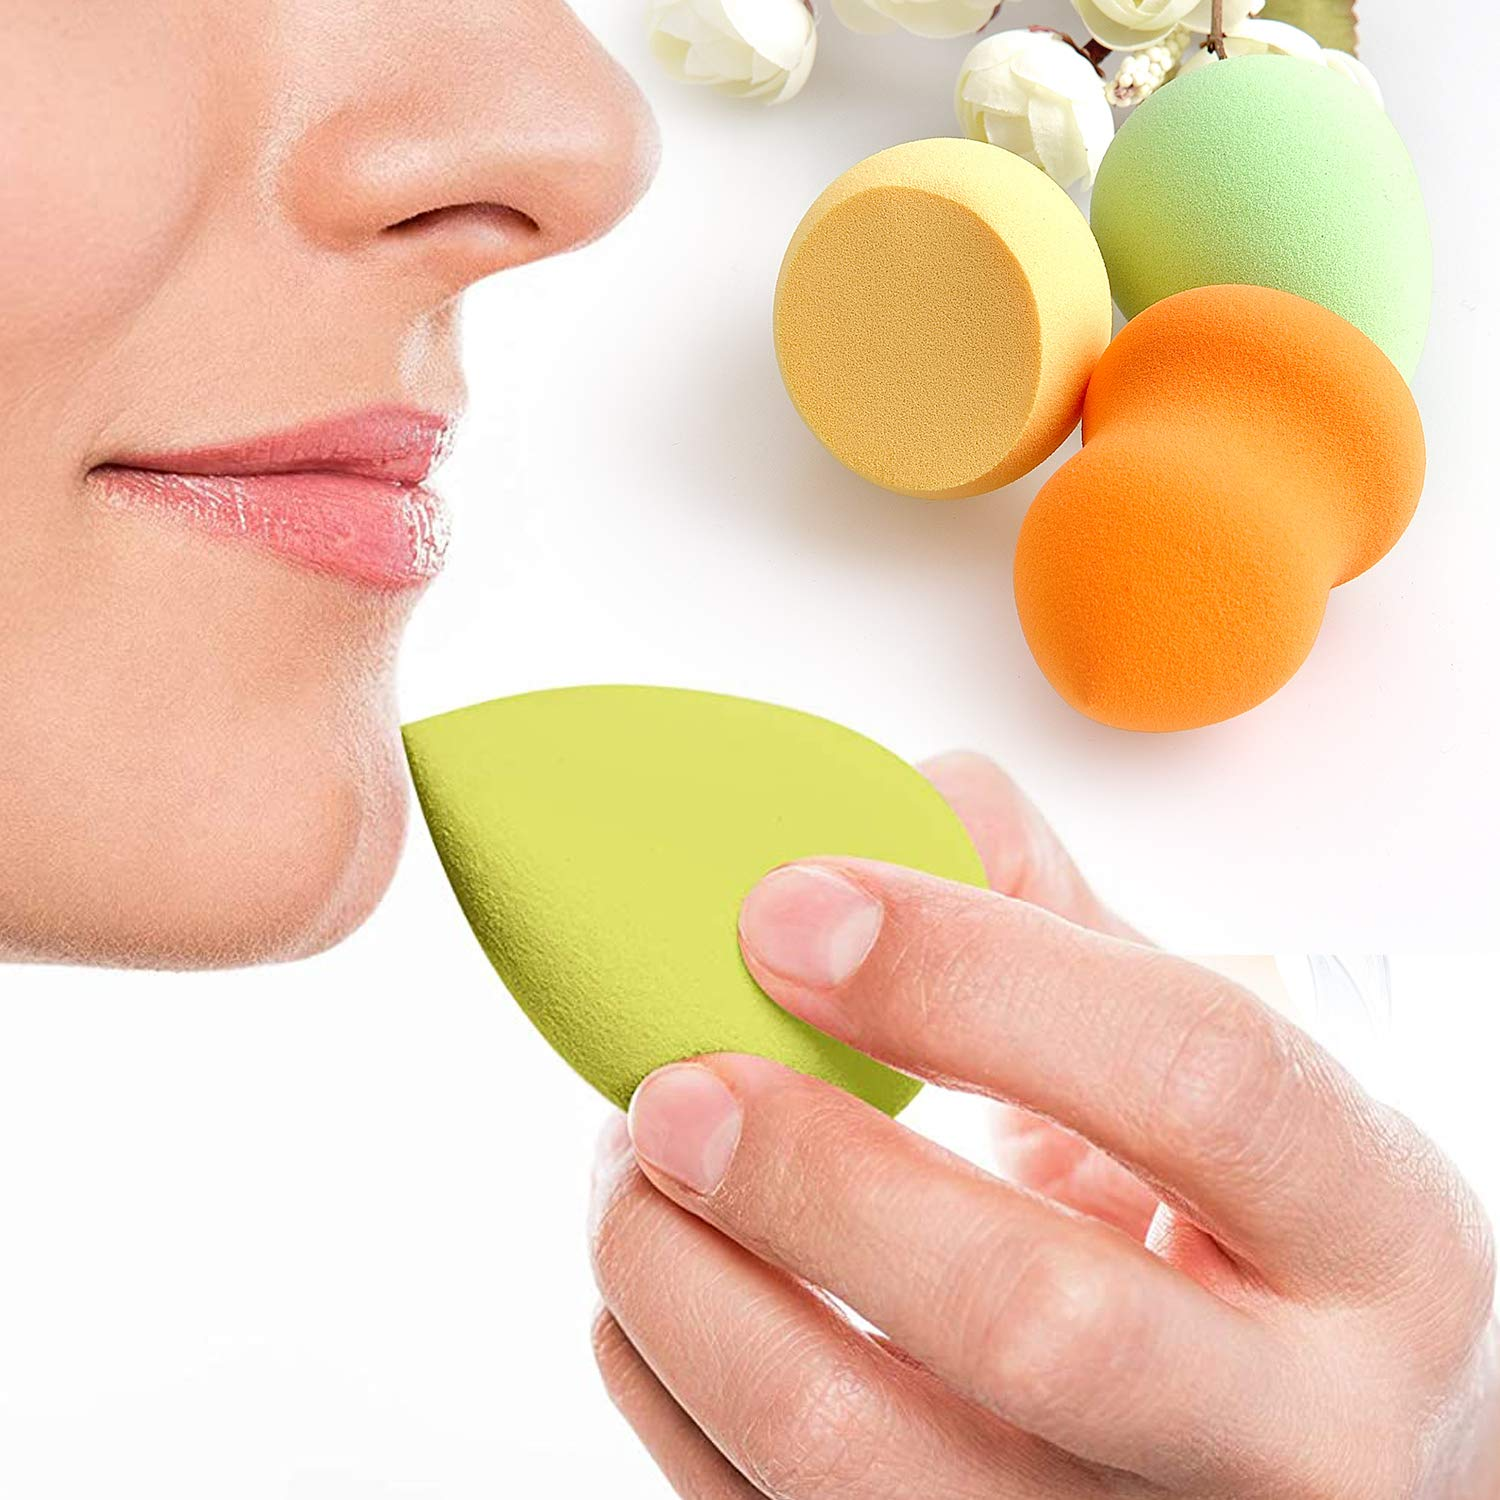 JIAMEI 3 PCS Makeup Sponge Blender Set, 3 Shapes Beauty Sponge Blender To Meet Any Of Your Makeup Needs Of Liquid Powder BB Cream Sunscreen Dry & Wet,Reusable